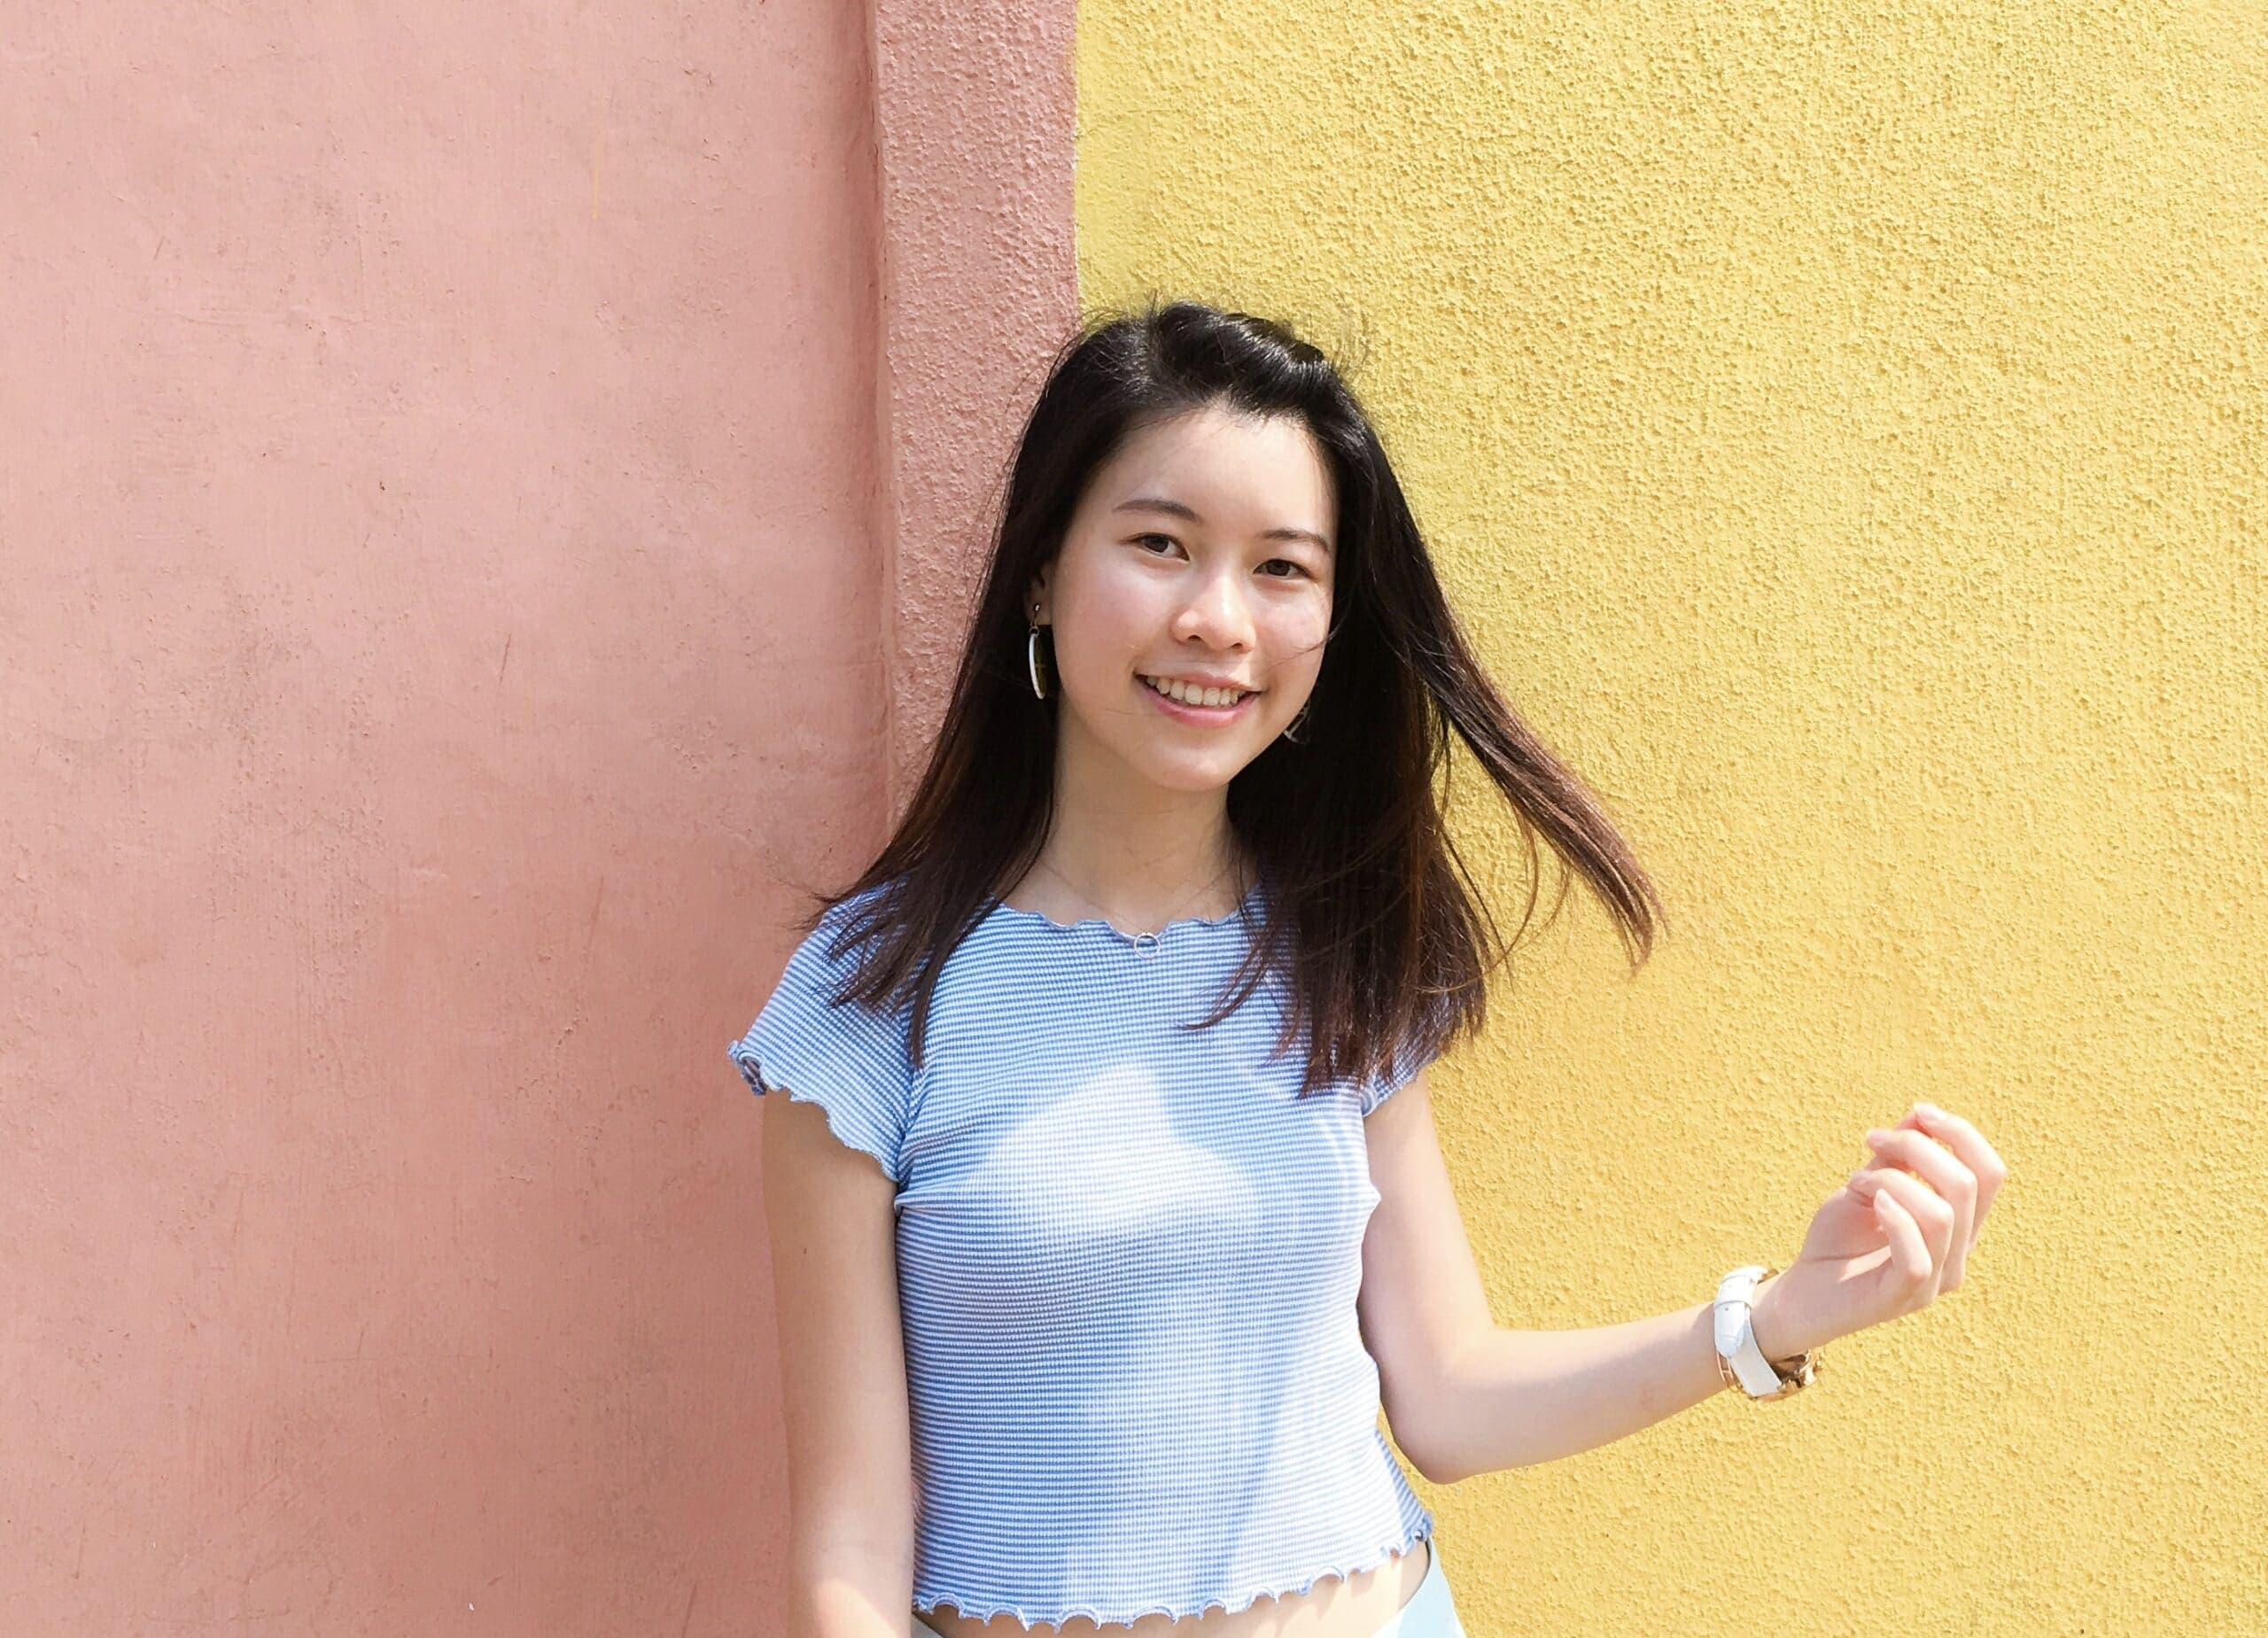 Picture of Yasmine Cheang in front of a pink and yellow background.